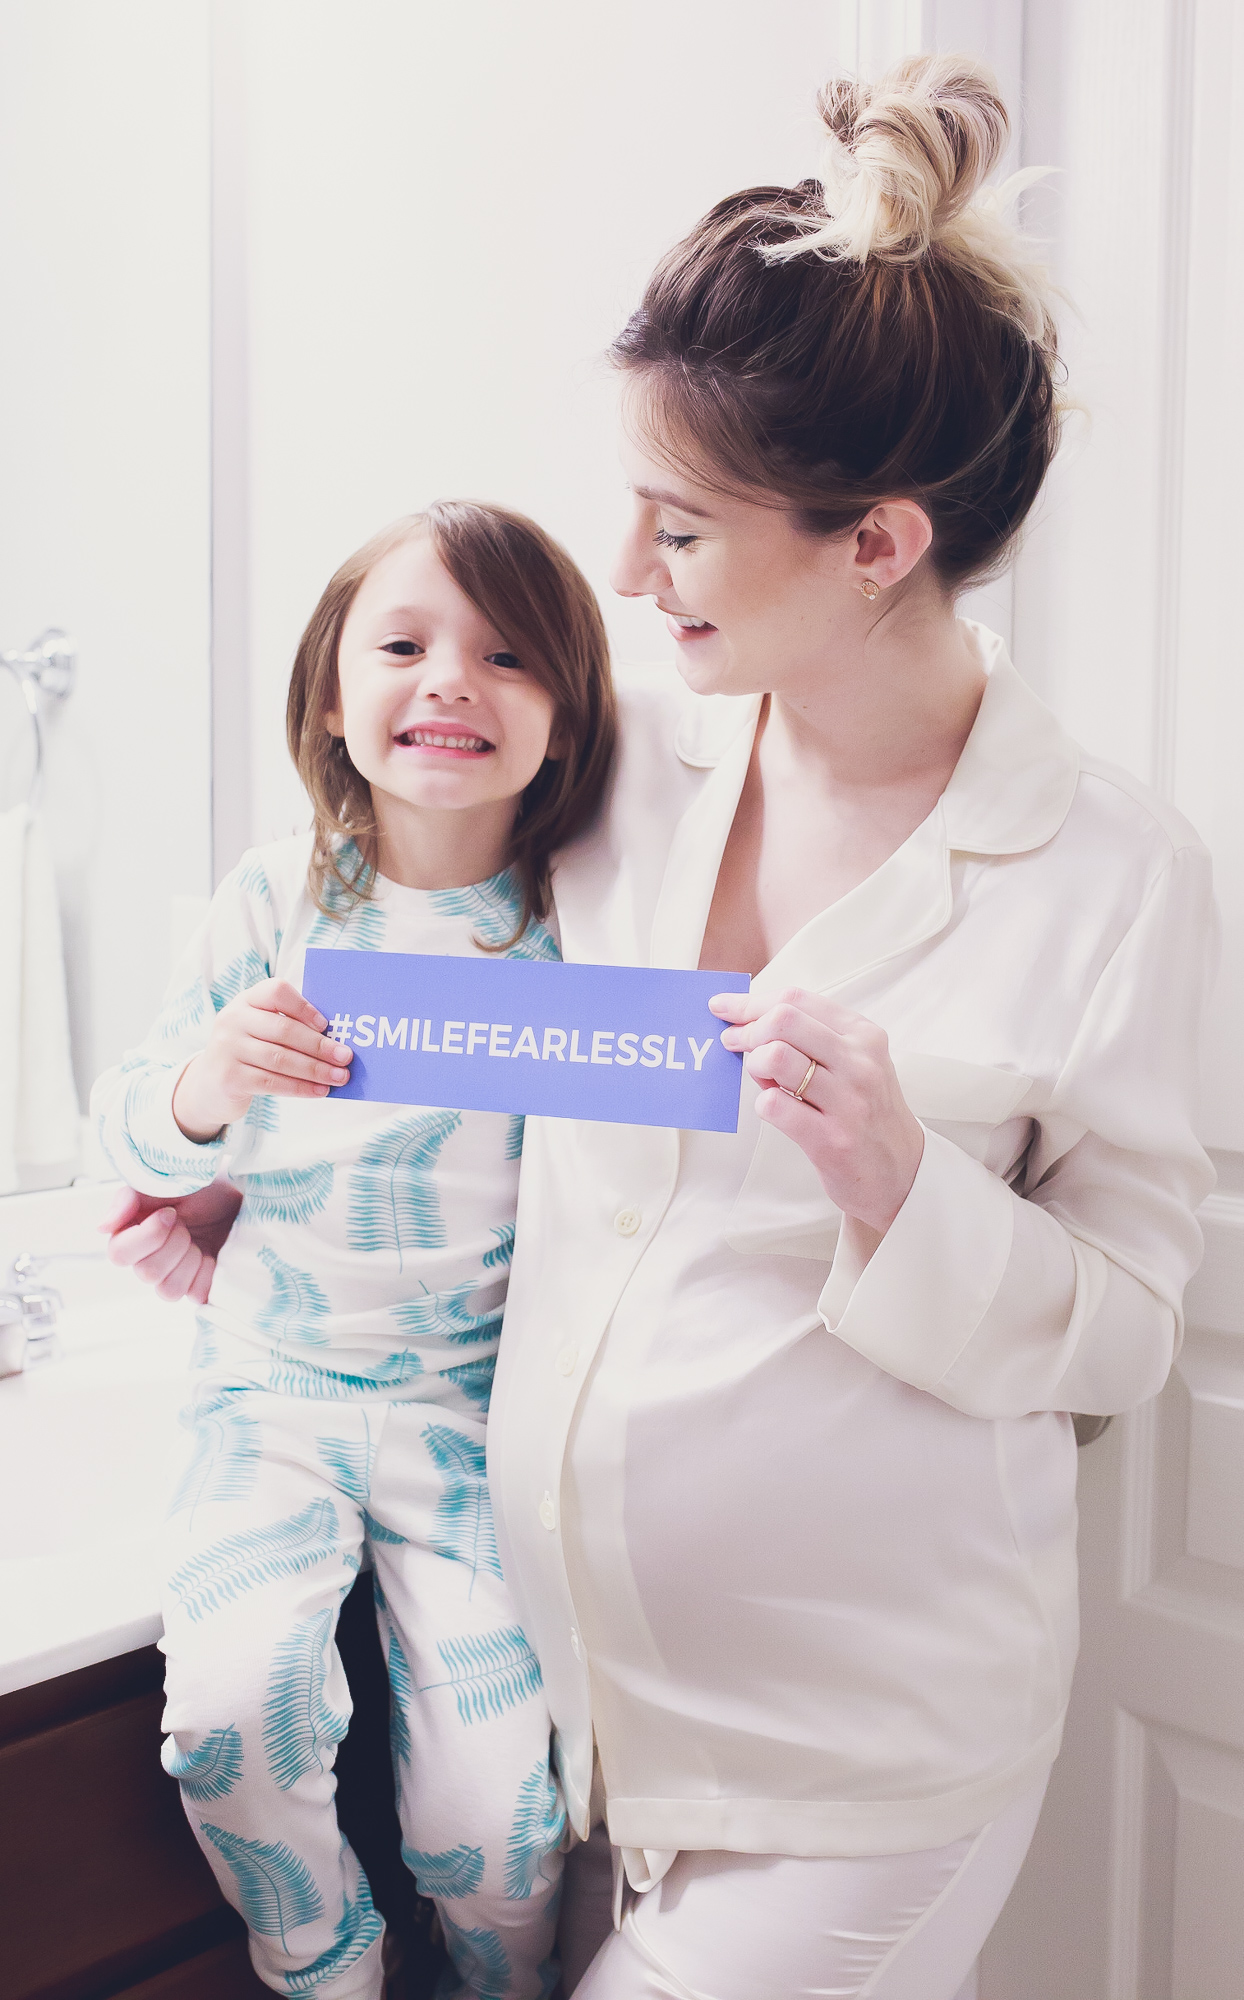 Lifestyle and fashion blogger Jessica Linn on Linn Style ins partnership with Smile Brilliant and the #smilefearlessly campaign. Vegan at home teeth whitening.